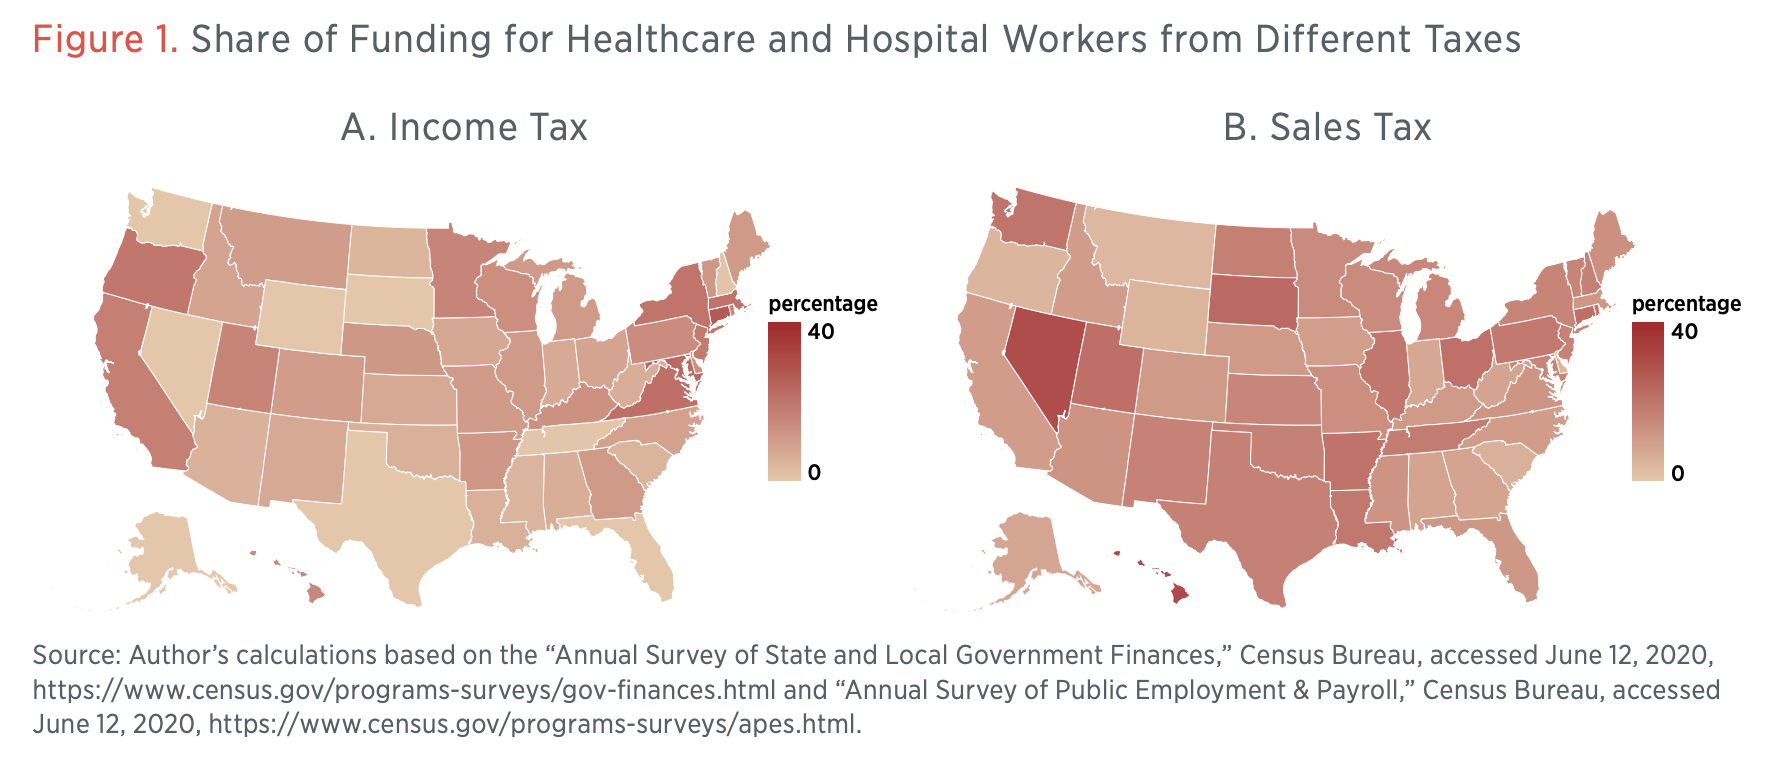 Figure 1. Share of Funding for Healthcare and Hospital Workers from Different Taxes